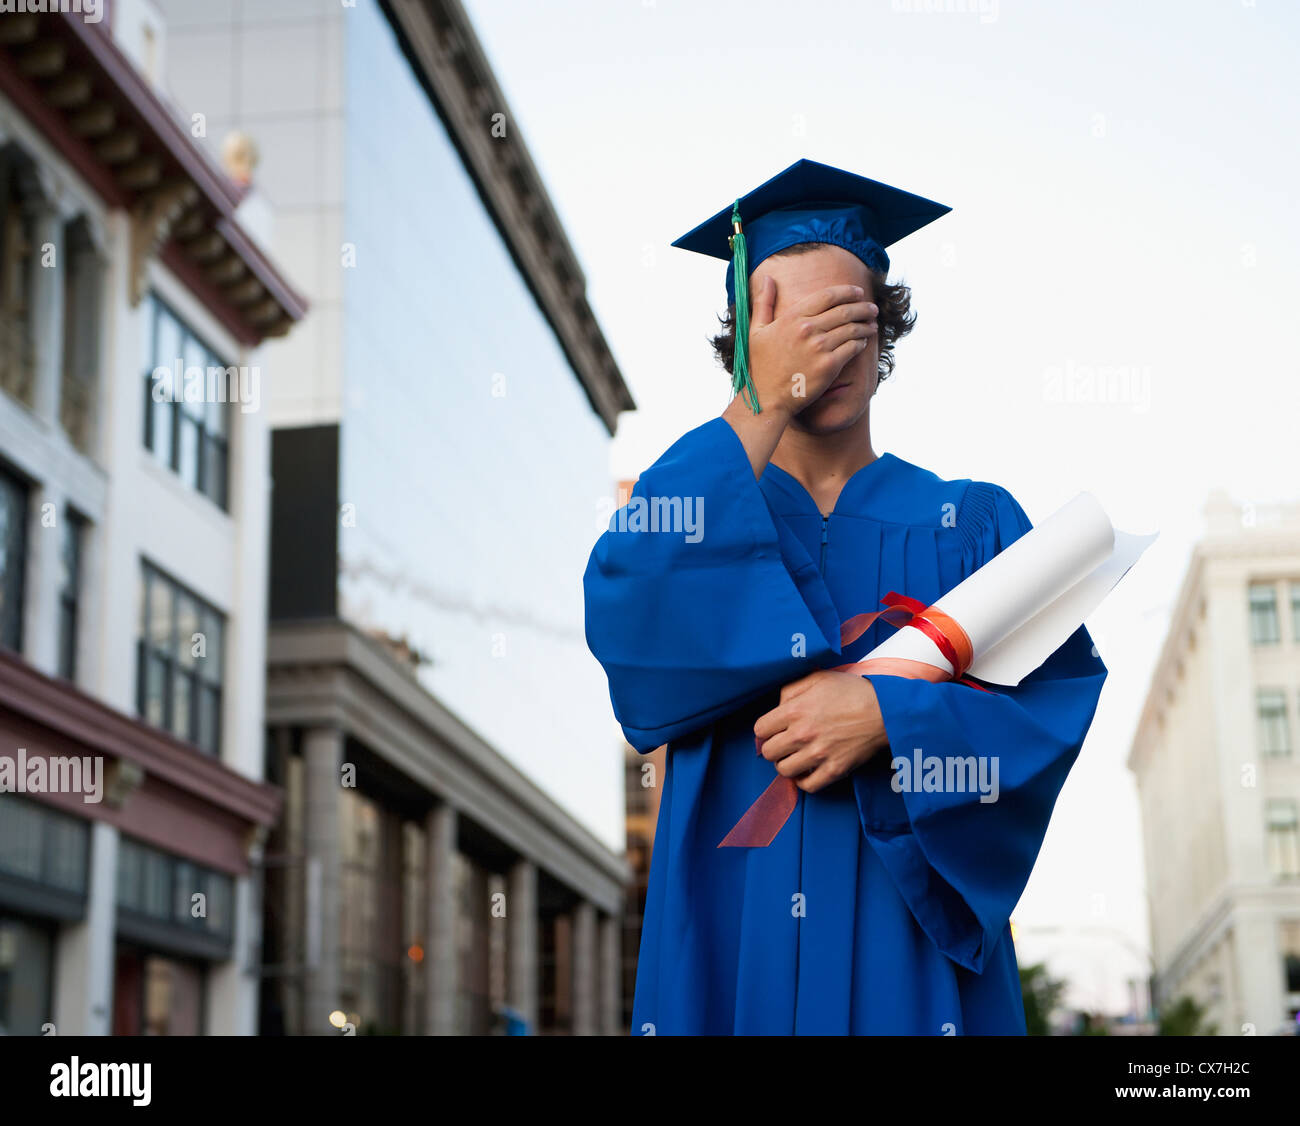 A Graduate In Cap And Gown Holds His Hand Over His Eyes; Victoria, British Columbia, Canada Stock Photo